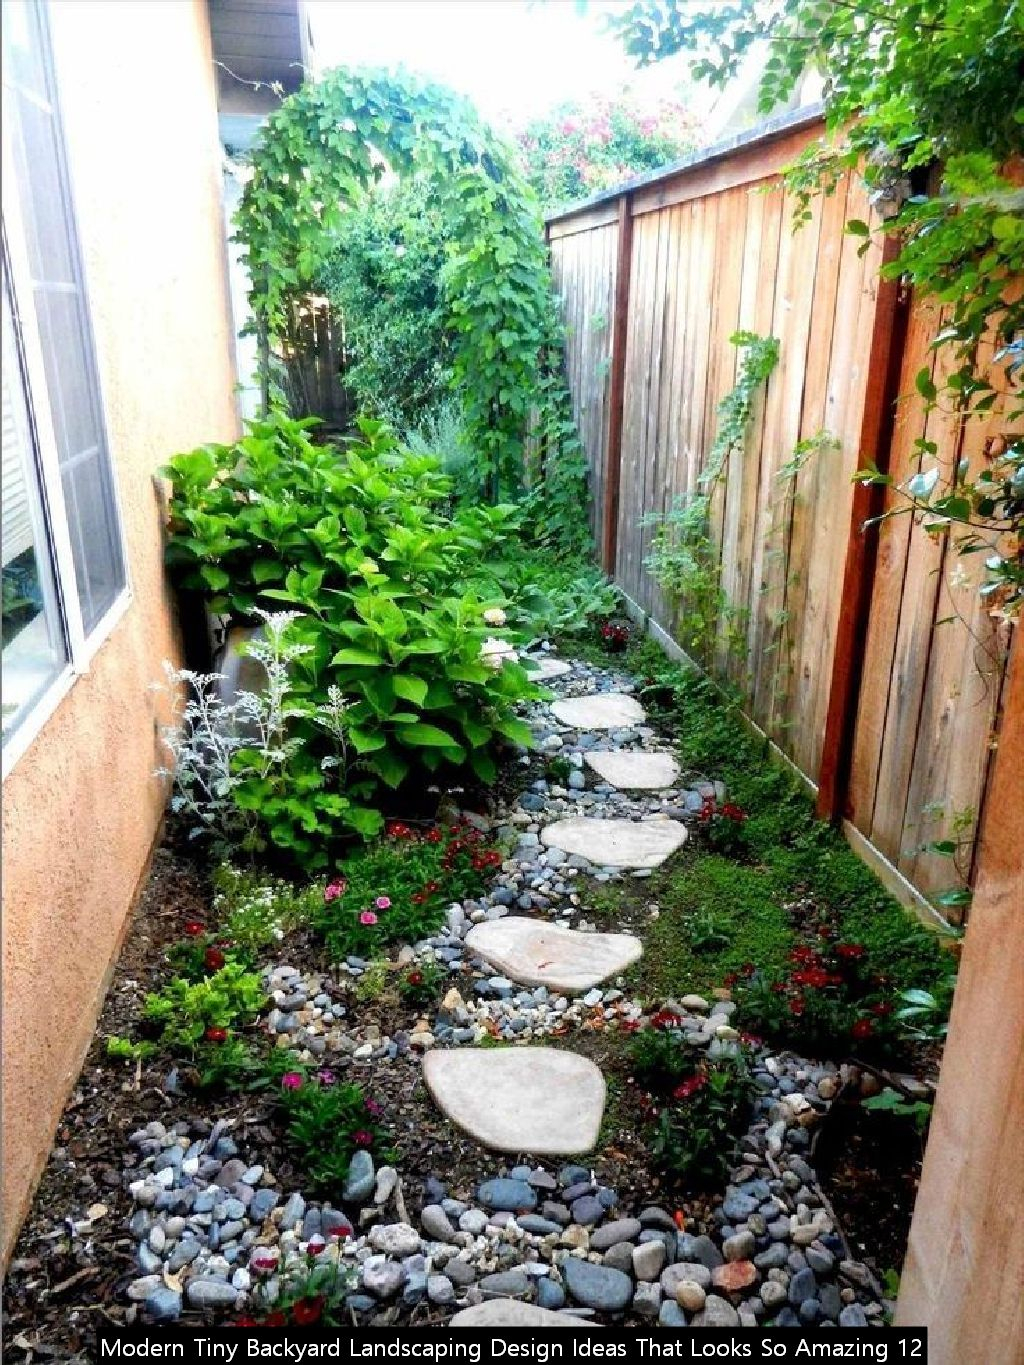 Modern Tiny Backyard Landscaping Design Ideas That Looks So Amazing 12